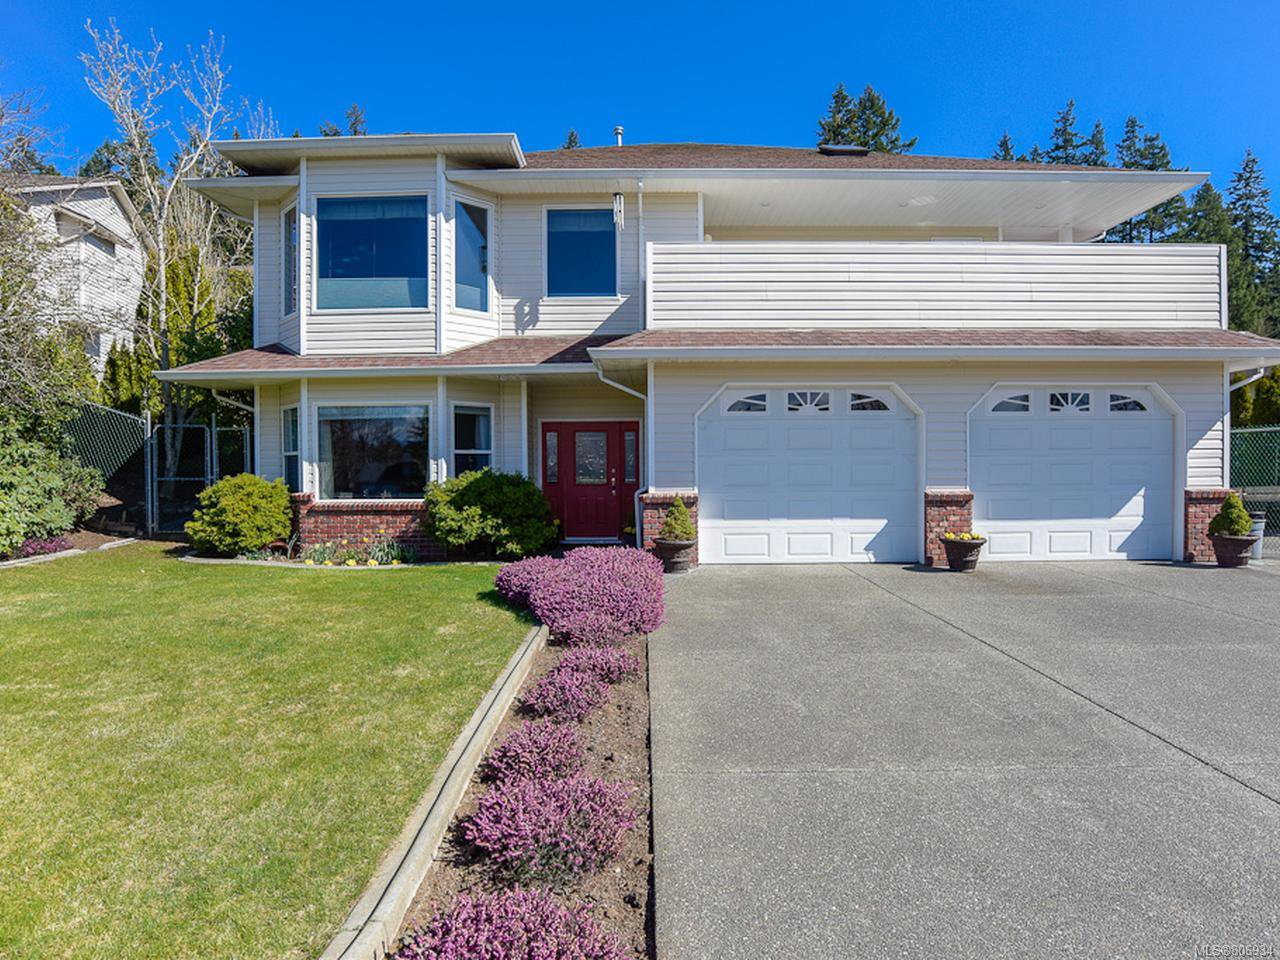 Main Photo: 1417 SABRE Court in COMOX: CV Comox (Town of) House for sale (Comox Valley)  : MLS®# 806934